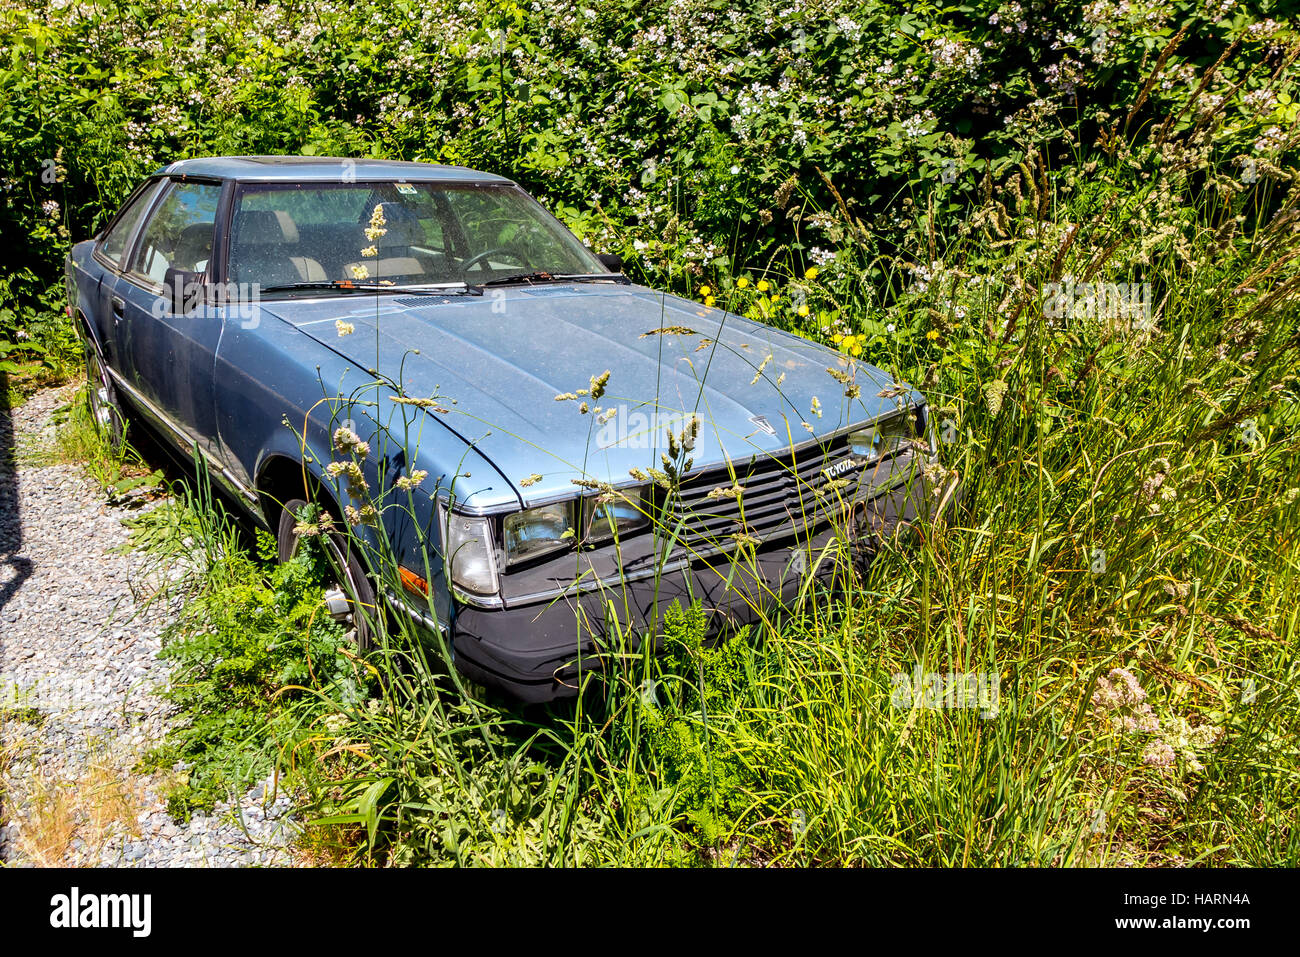 Vehicle being consumed by a blamble bush on Vashon Island, near Seattle, in the Pacific Northwest of the USA - Stock Image